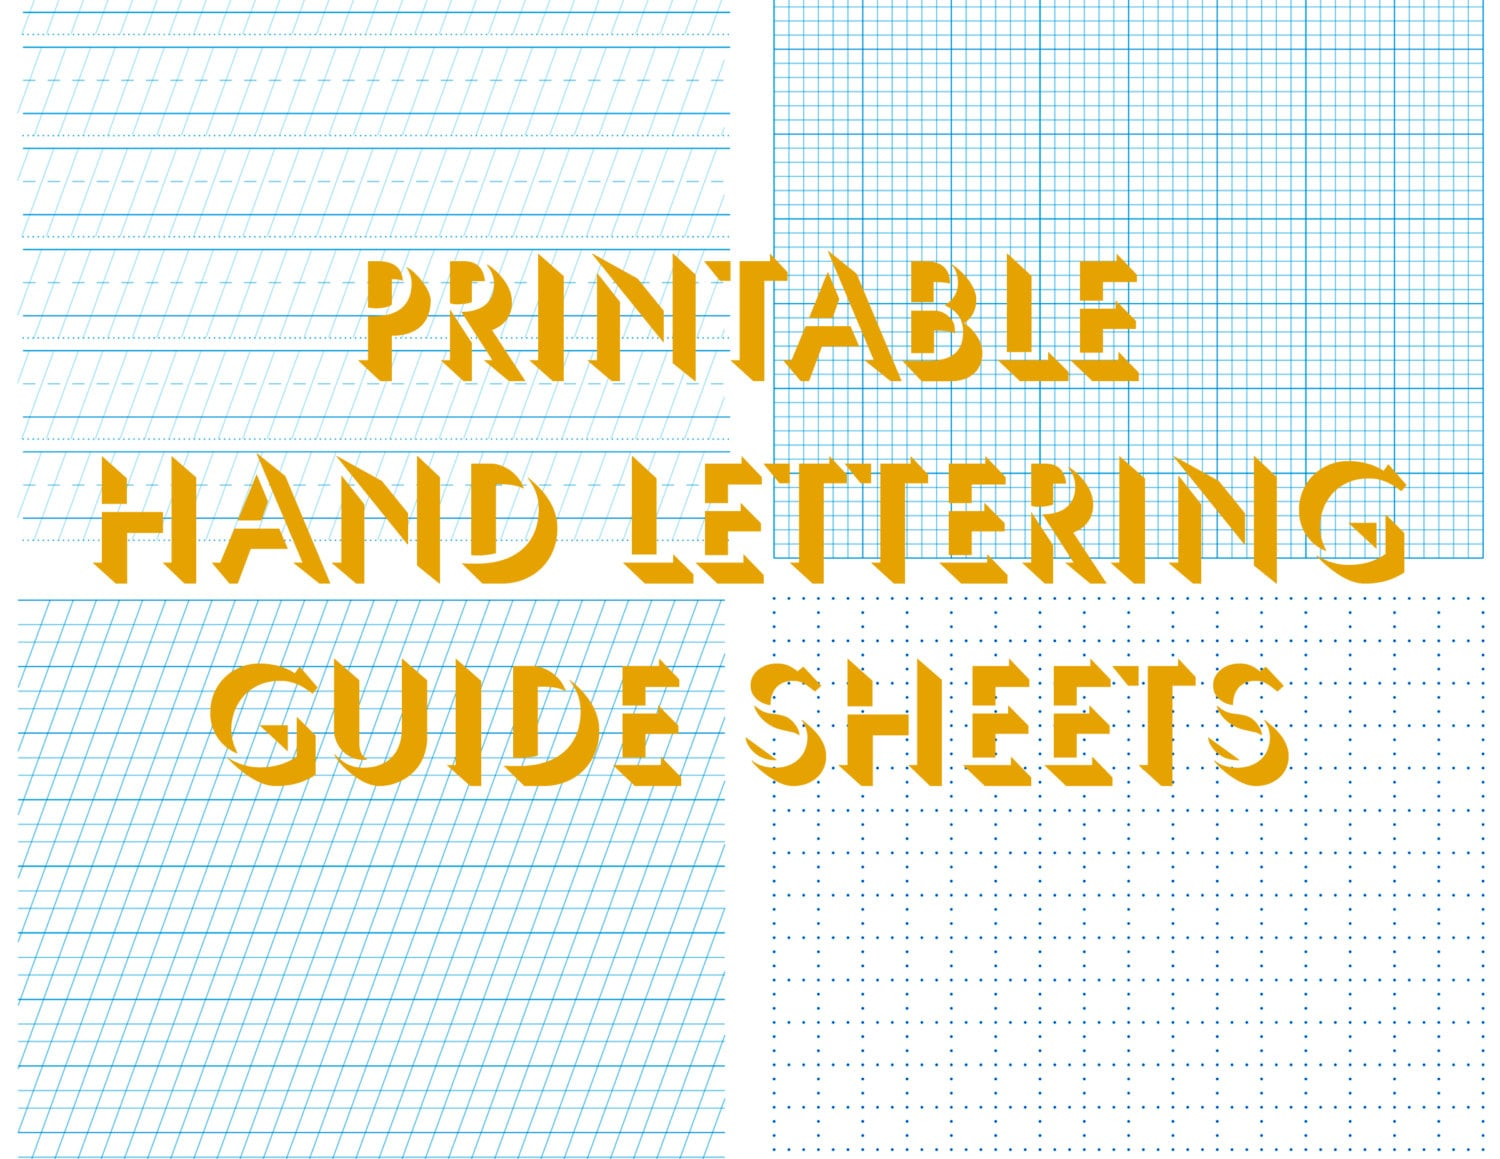 Free downloadable calligraphy practice sheets